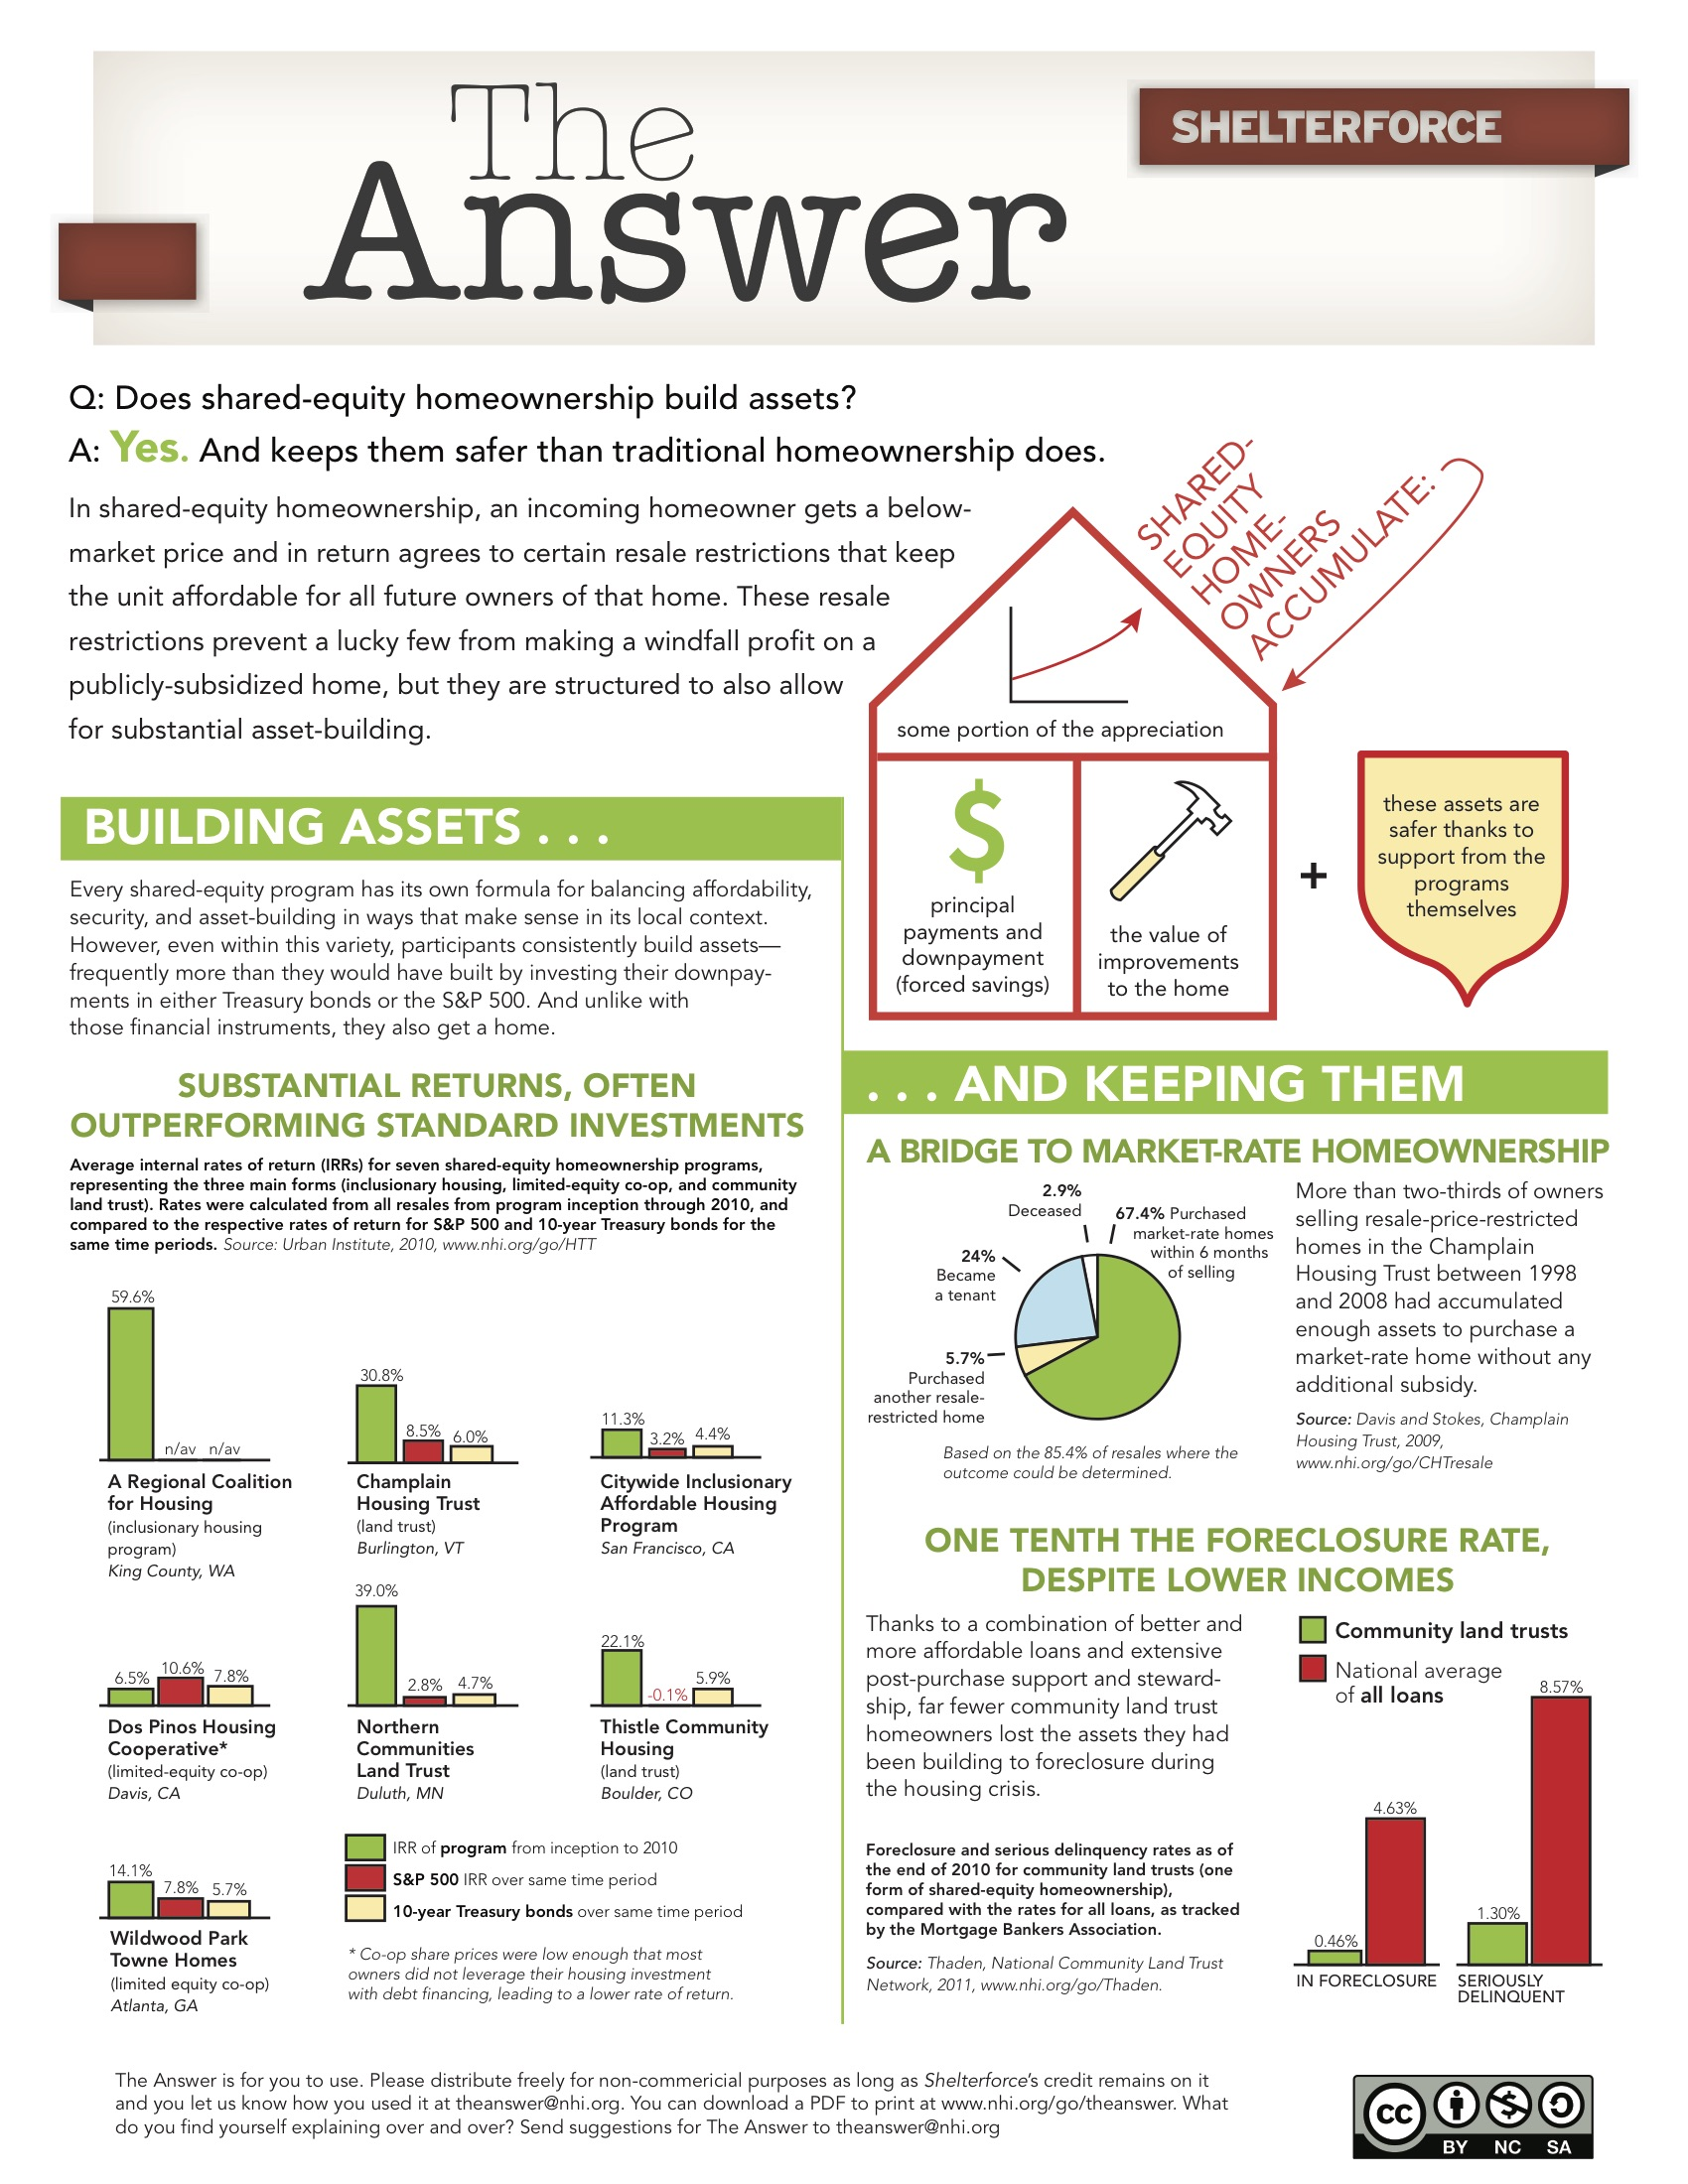 Does shared-equity homeownership build assets? Yes. And keeps them safer than traditional homeownership does. Various graphs and charts follow to back up this assertion. Image links to pdf version.